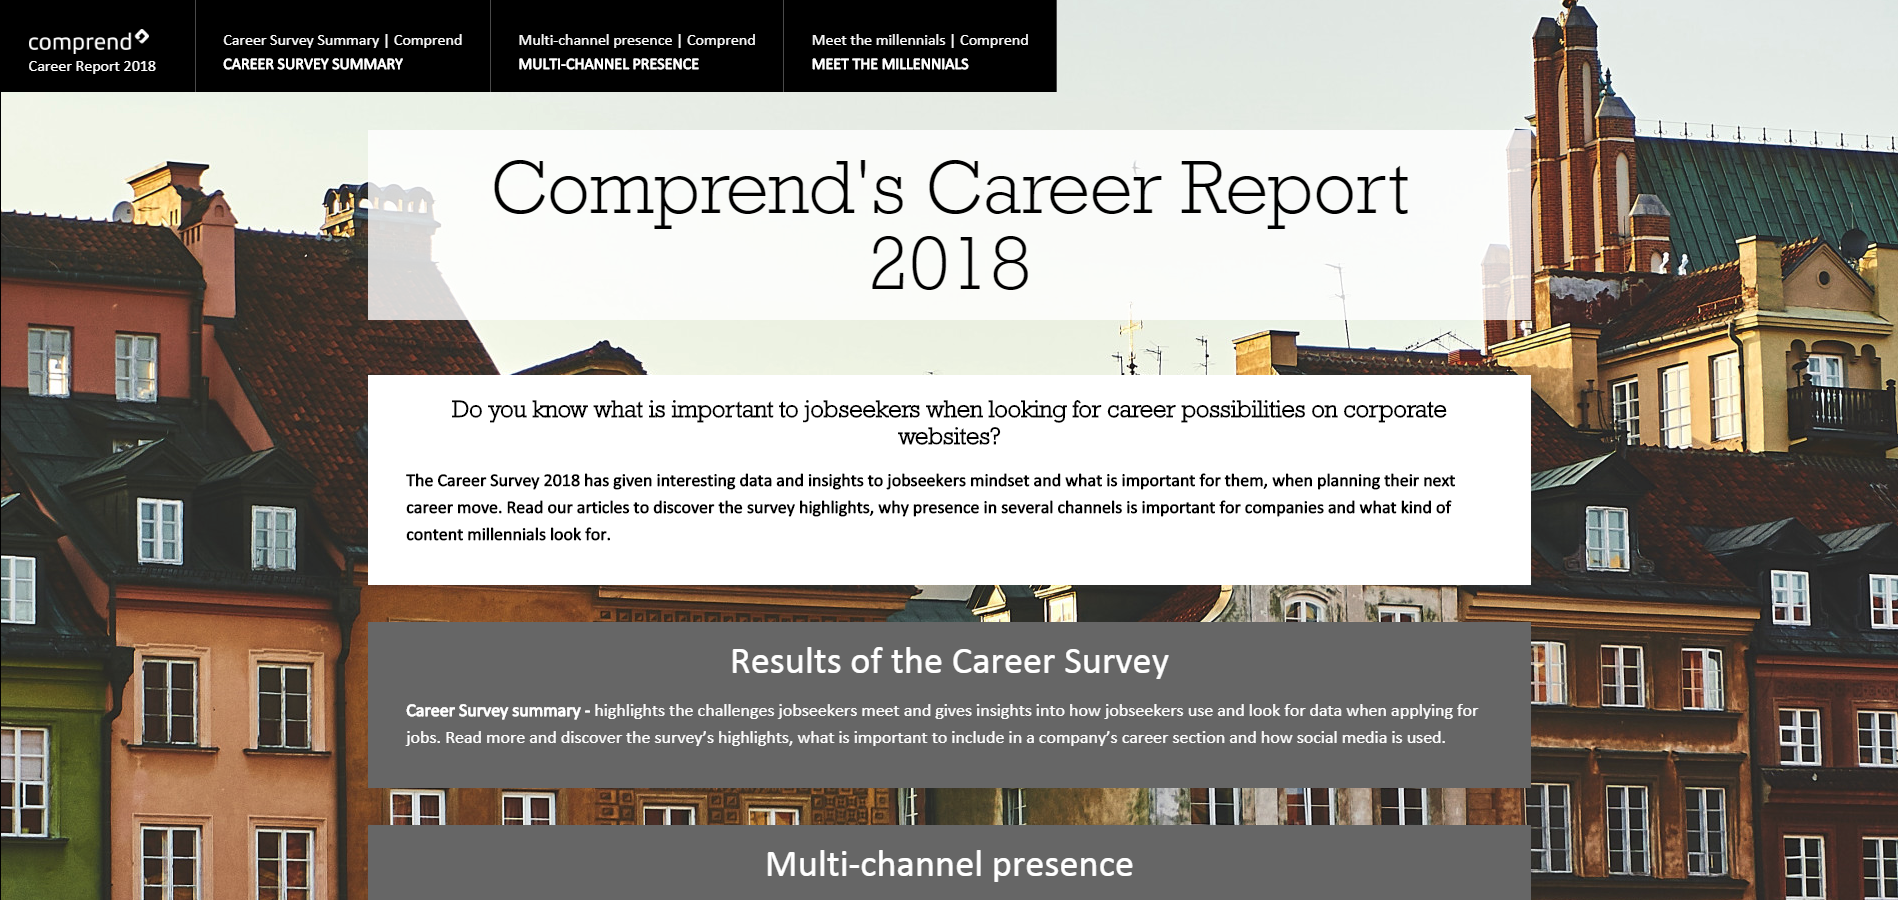 Screenshot of the Career Report 2018